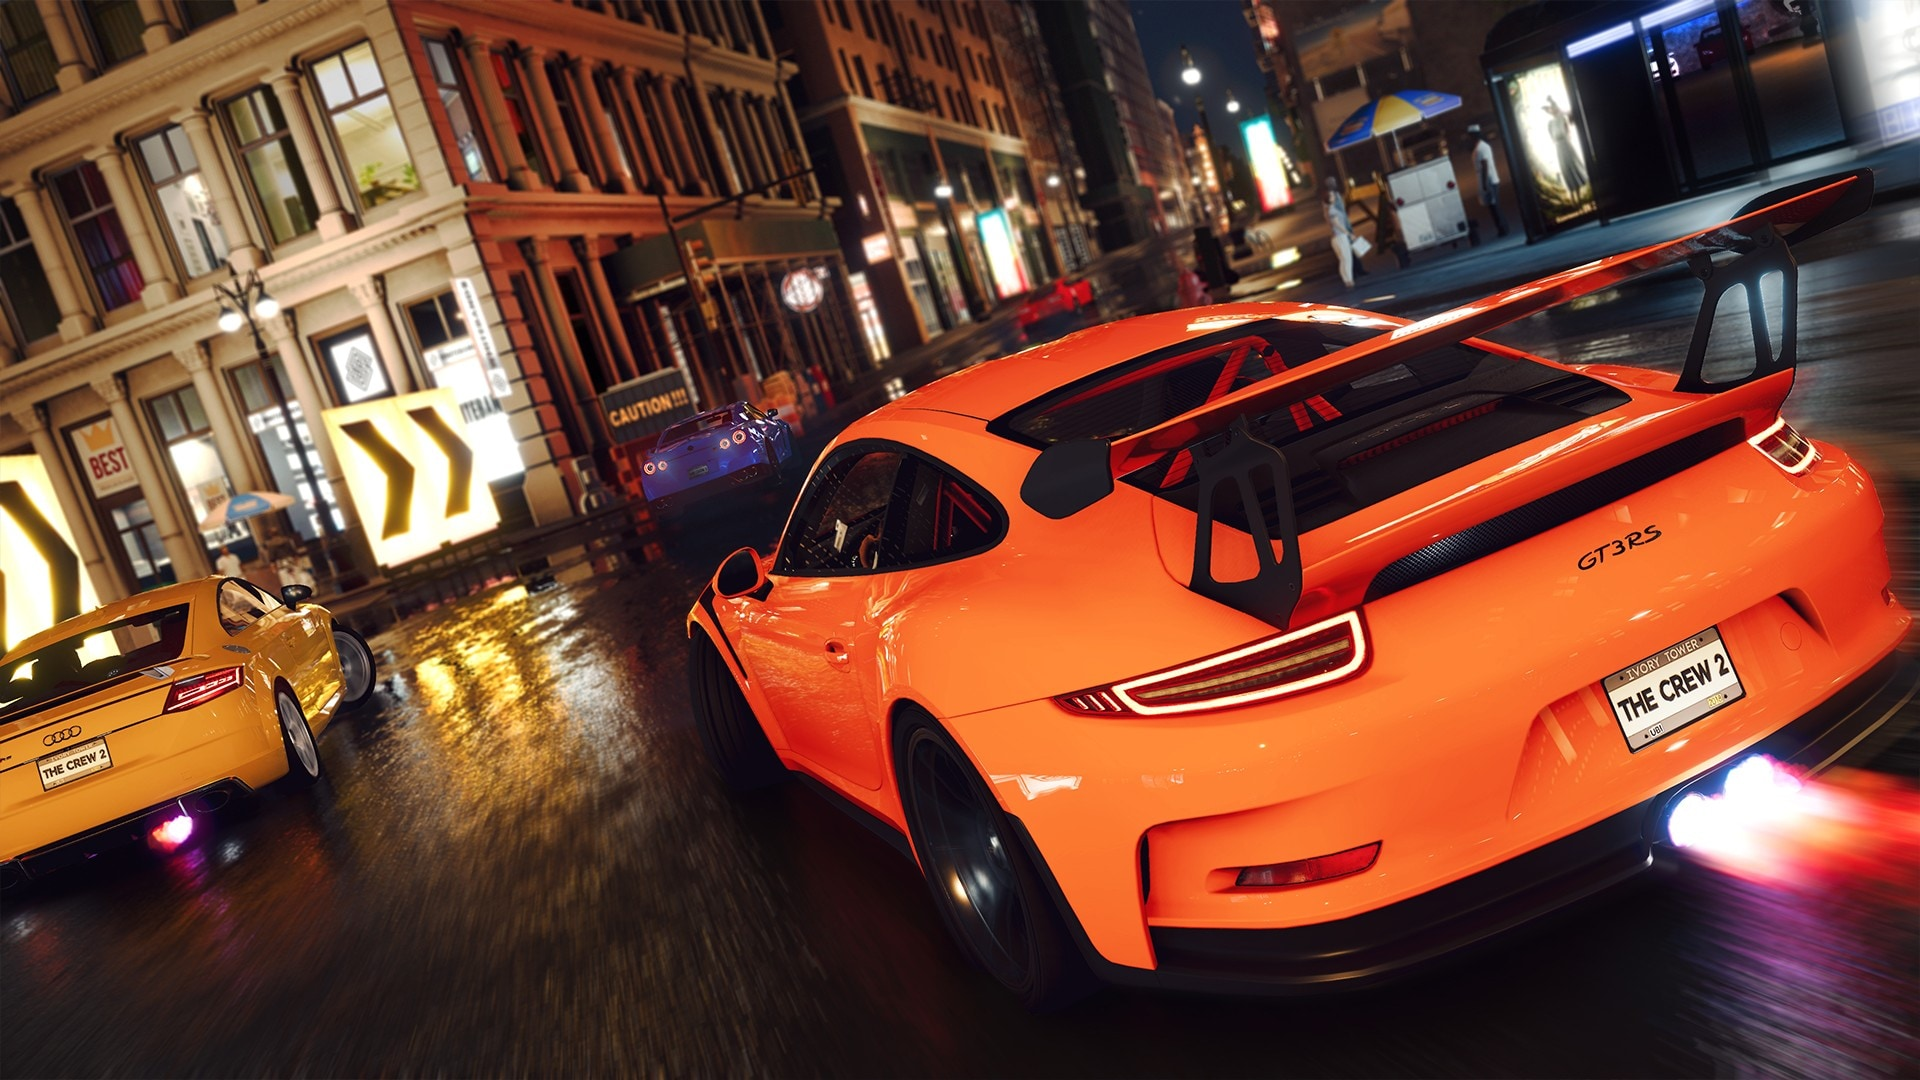 The Crew 2 sport cars